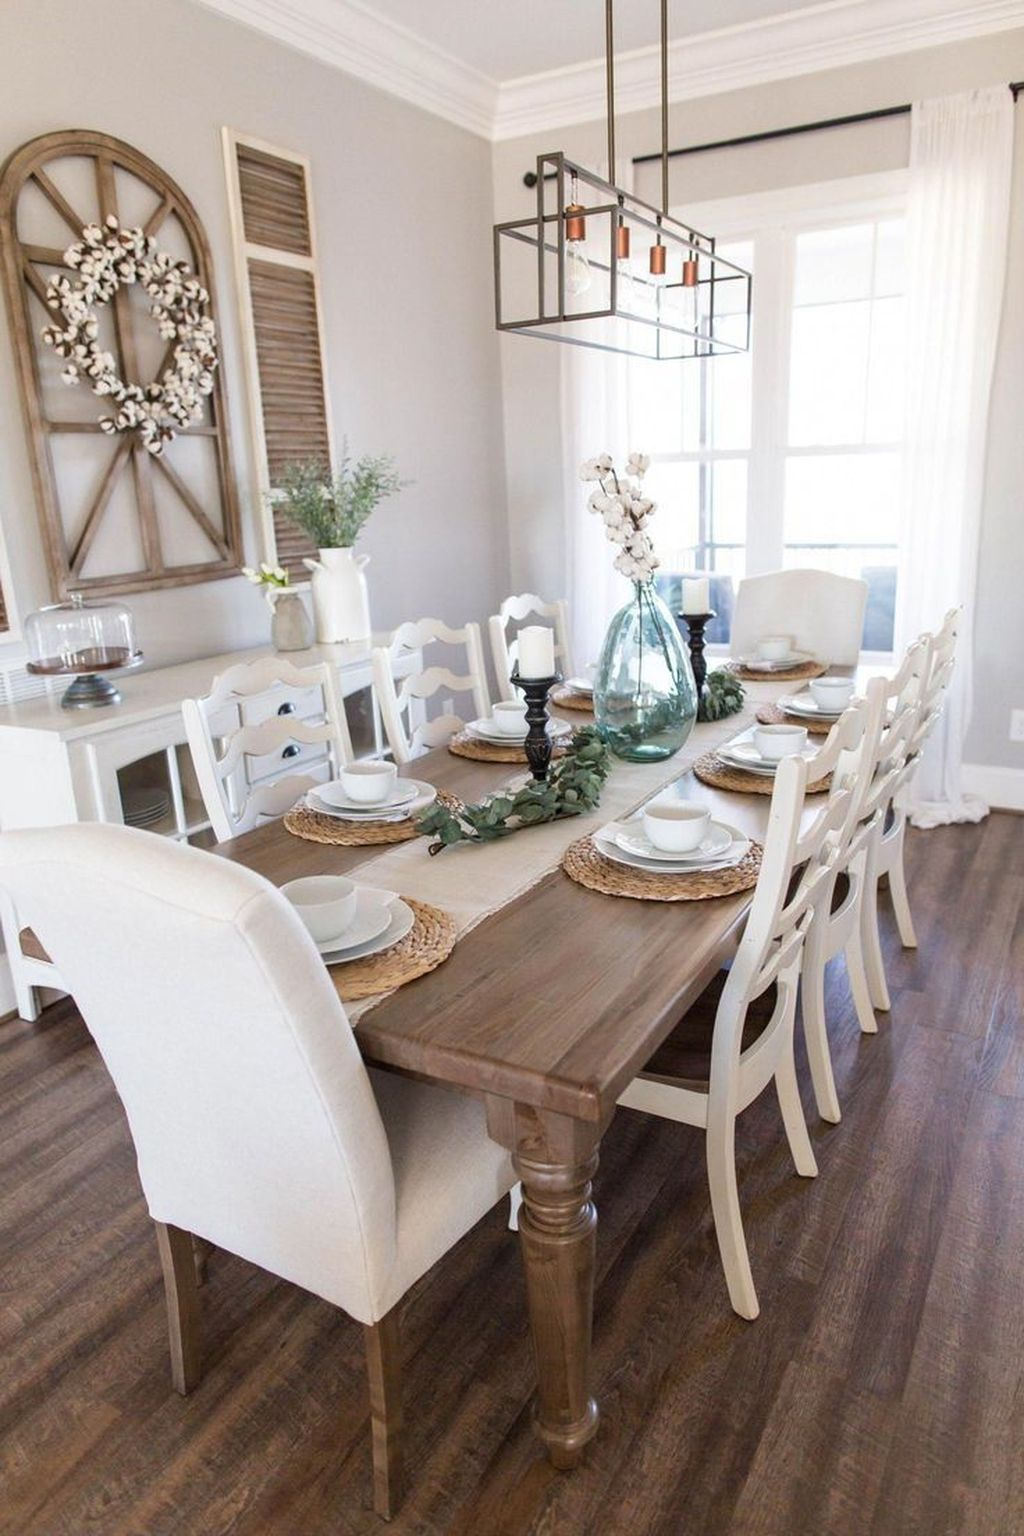 Admirable Dining Room Design Ideas You Will Love 18